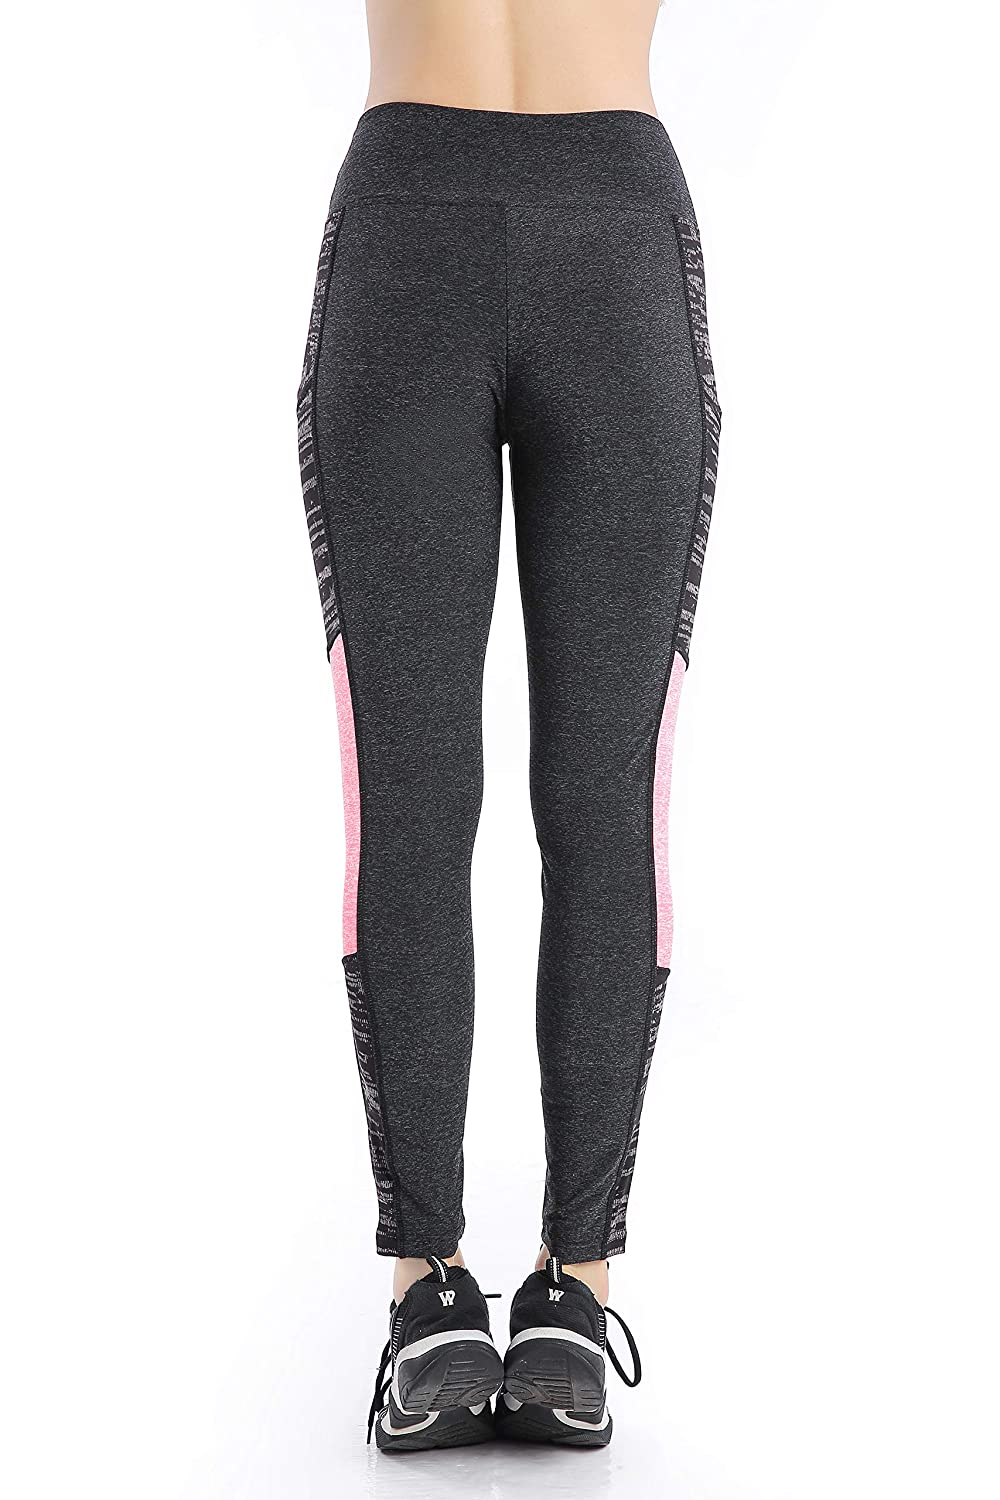 Nidalee Womens Yoga Pants High Waist Workout Leggings Running Tights with Pocket